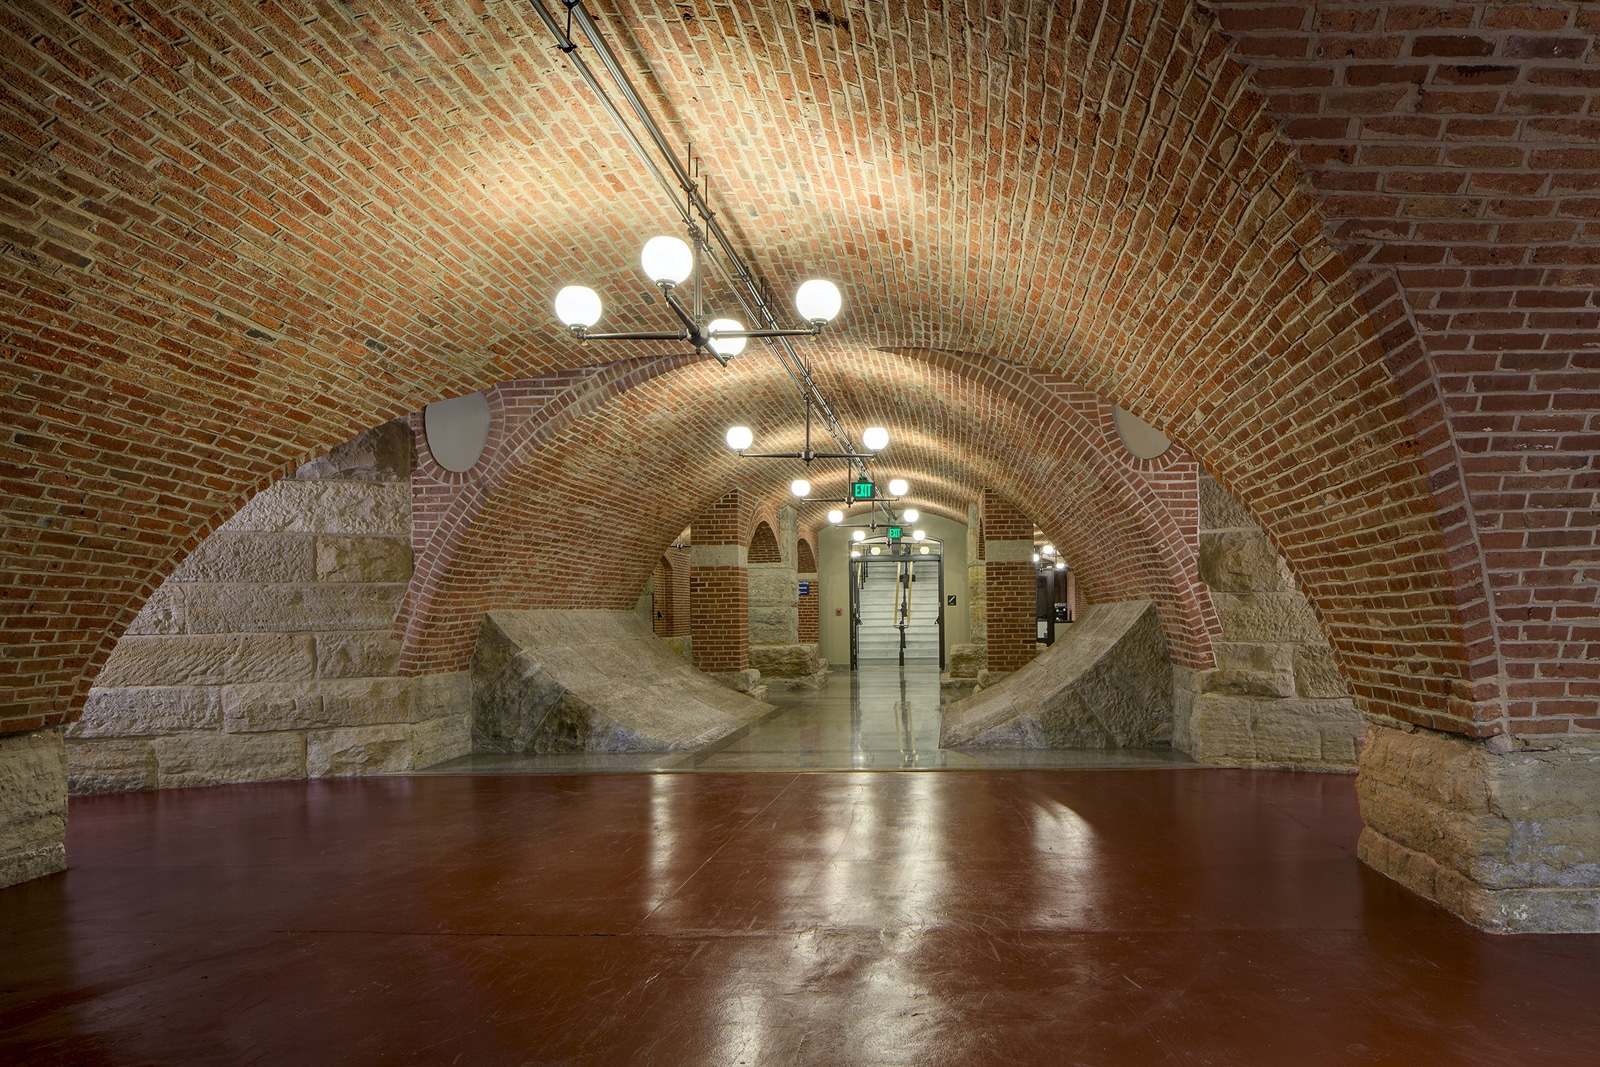 016_Basement_vaulting_at_Four_Corners_facing_west-2-2-2